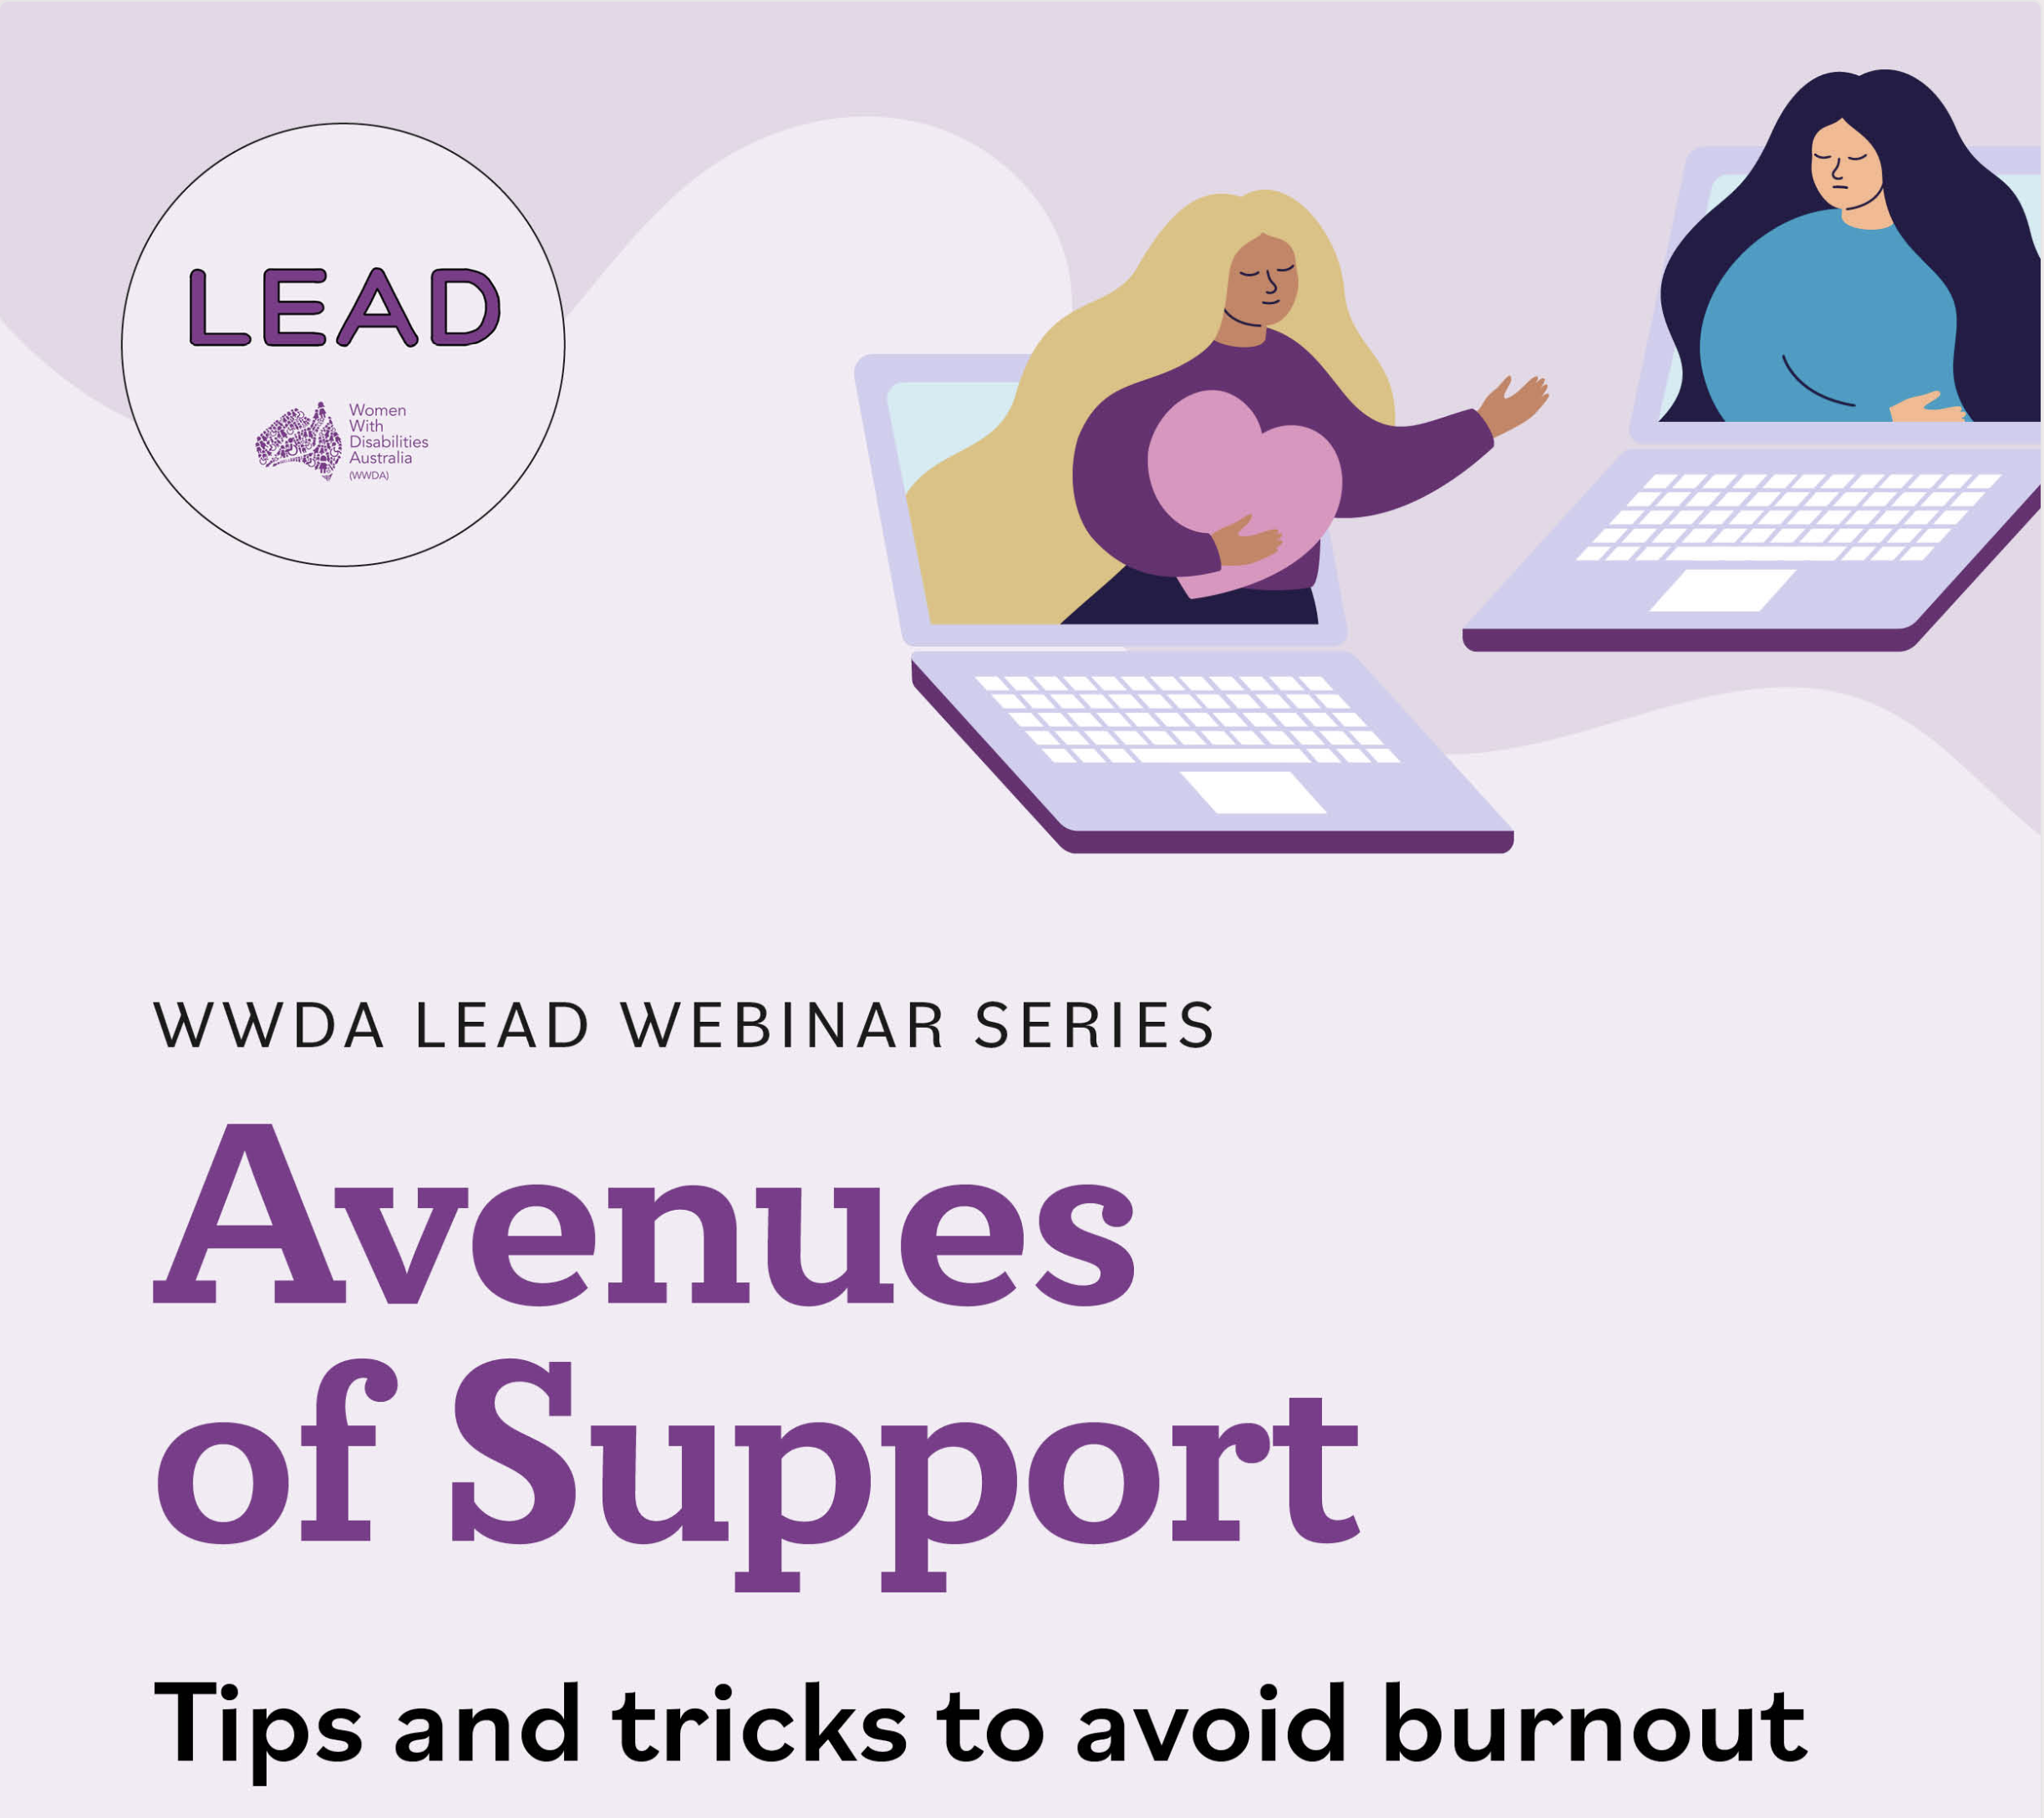 Purple background, text on the image reads: WWDA LEAD Webinar Series, Avenues of Support, Tips and tricks to avoid burnout.